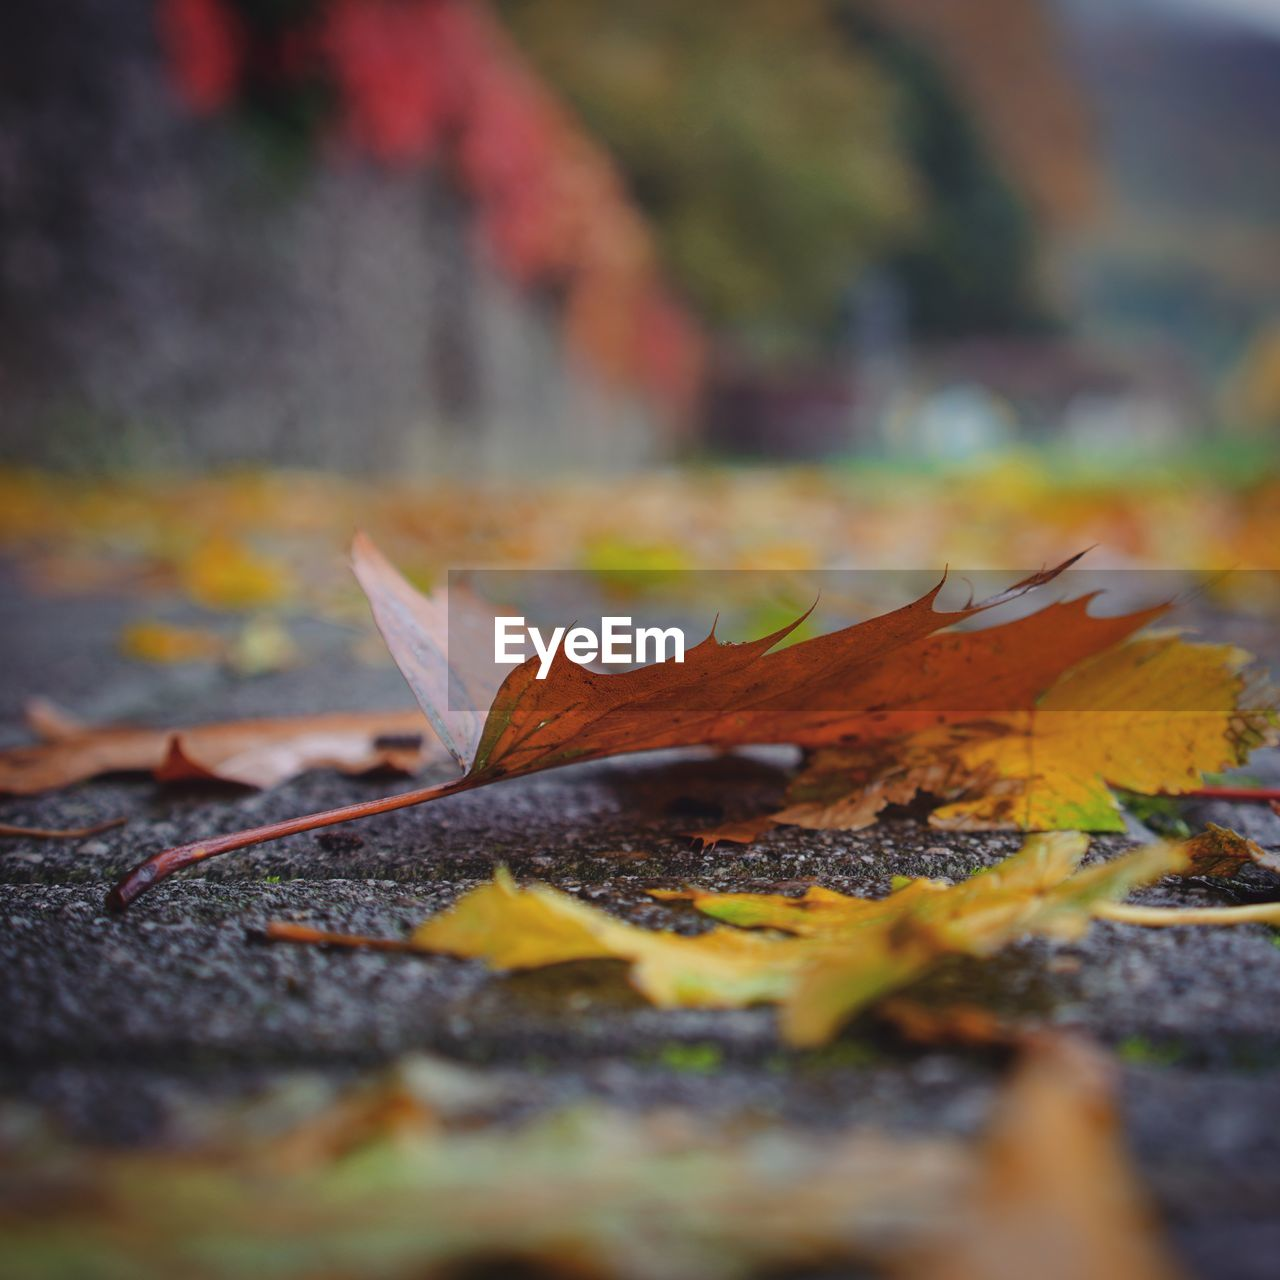 leaf, plant part, autumn, change, selective focus, close-up, nature, dry, falling, day, leaves, no people, orange color, maple leaf, plant, beauty in nature, outdoors, field, vulnerability, land, surface level, natural condition, autumn collection, fall